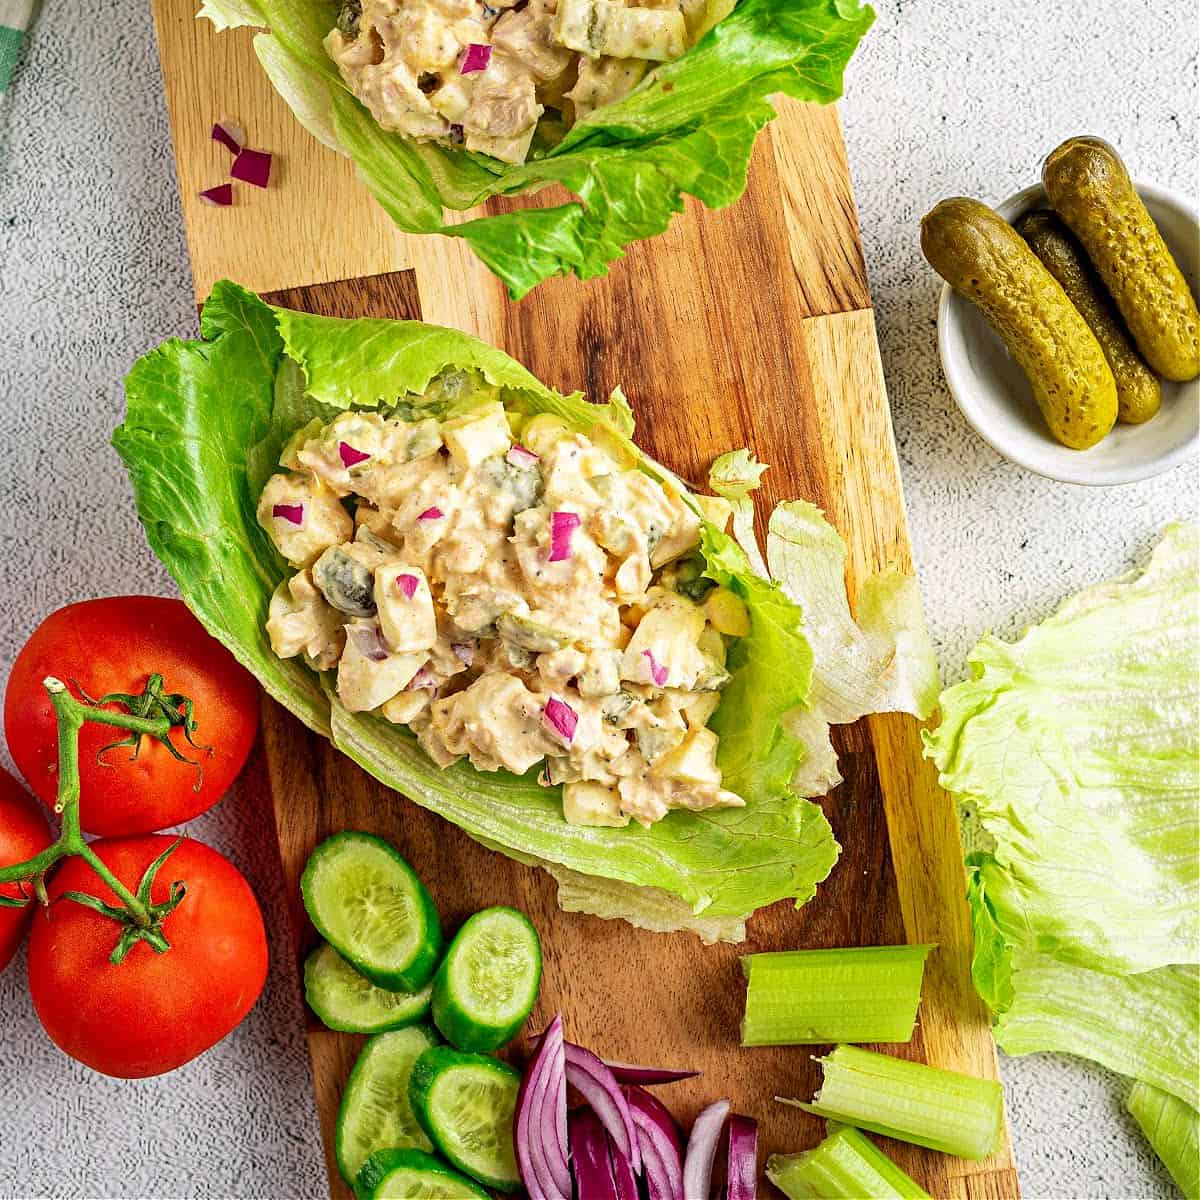 a close up of a tuna salad lettuce wrap on a cutting board with chopped vegetables